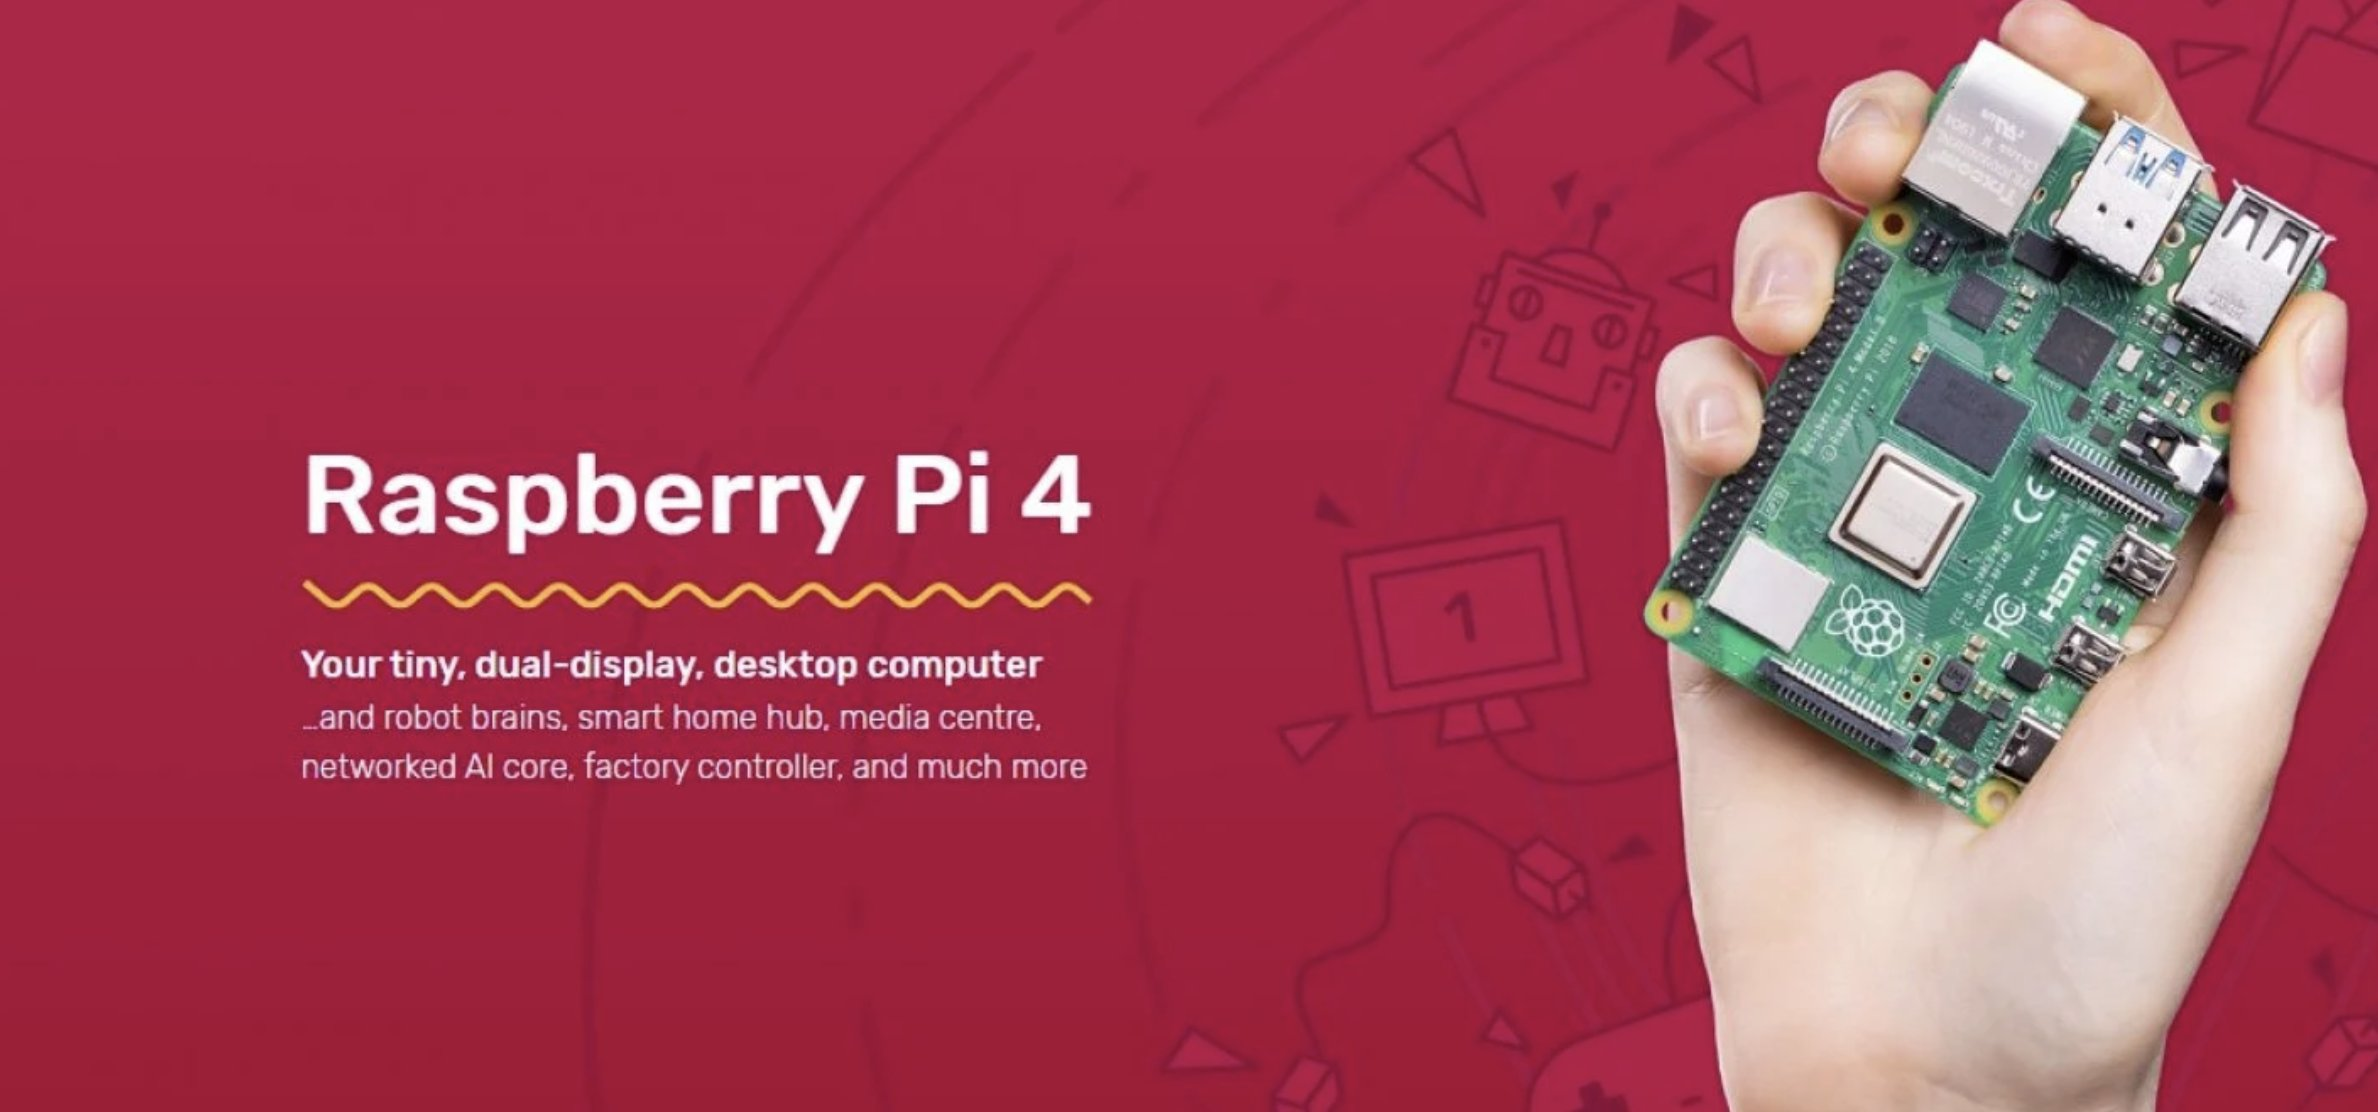 Moving from Incredible PBX 2020 to 2021 on the Raspberry Pi